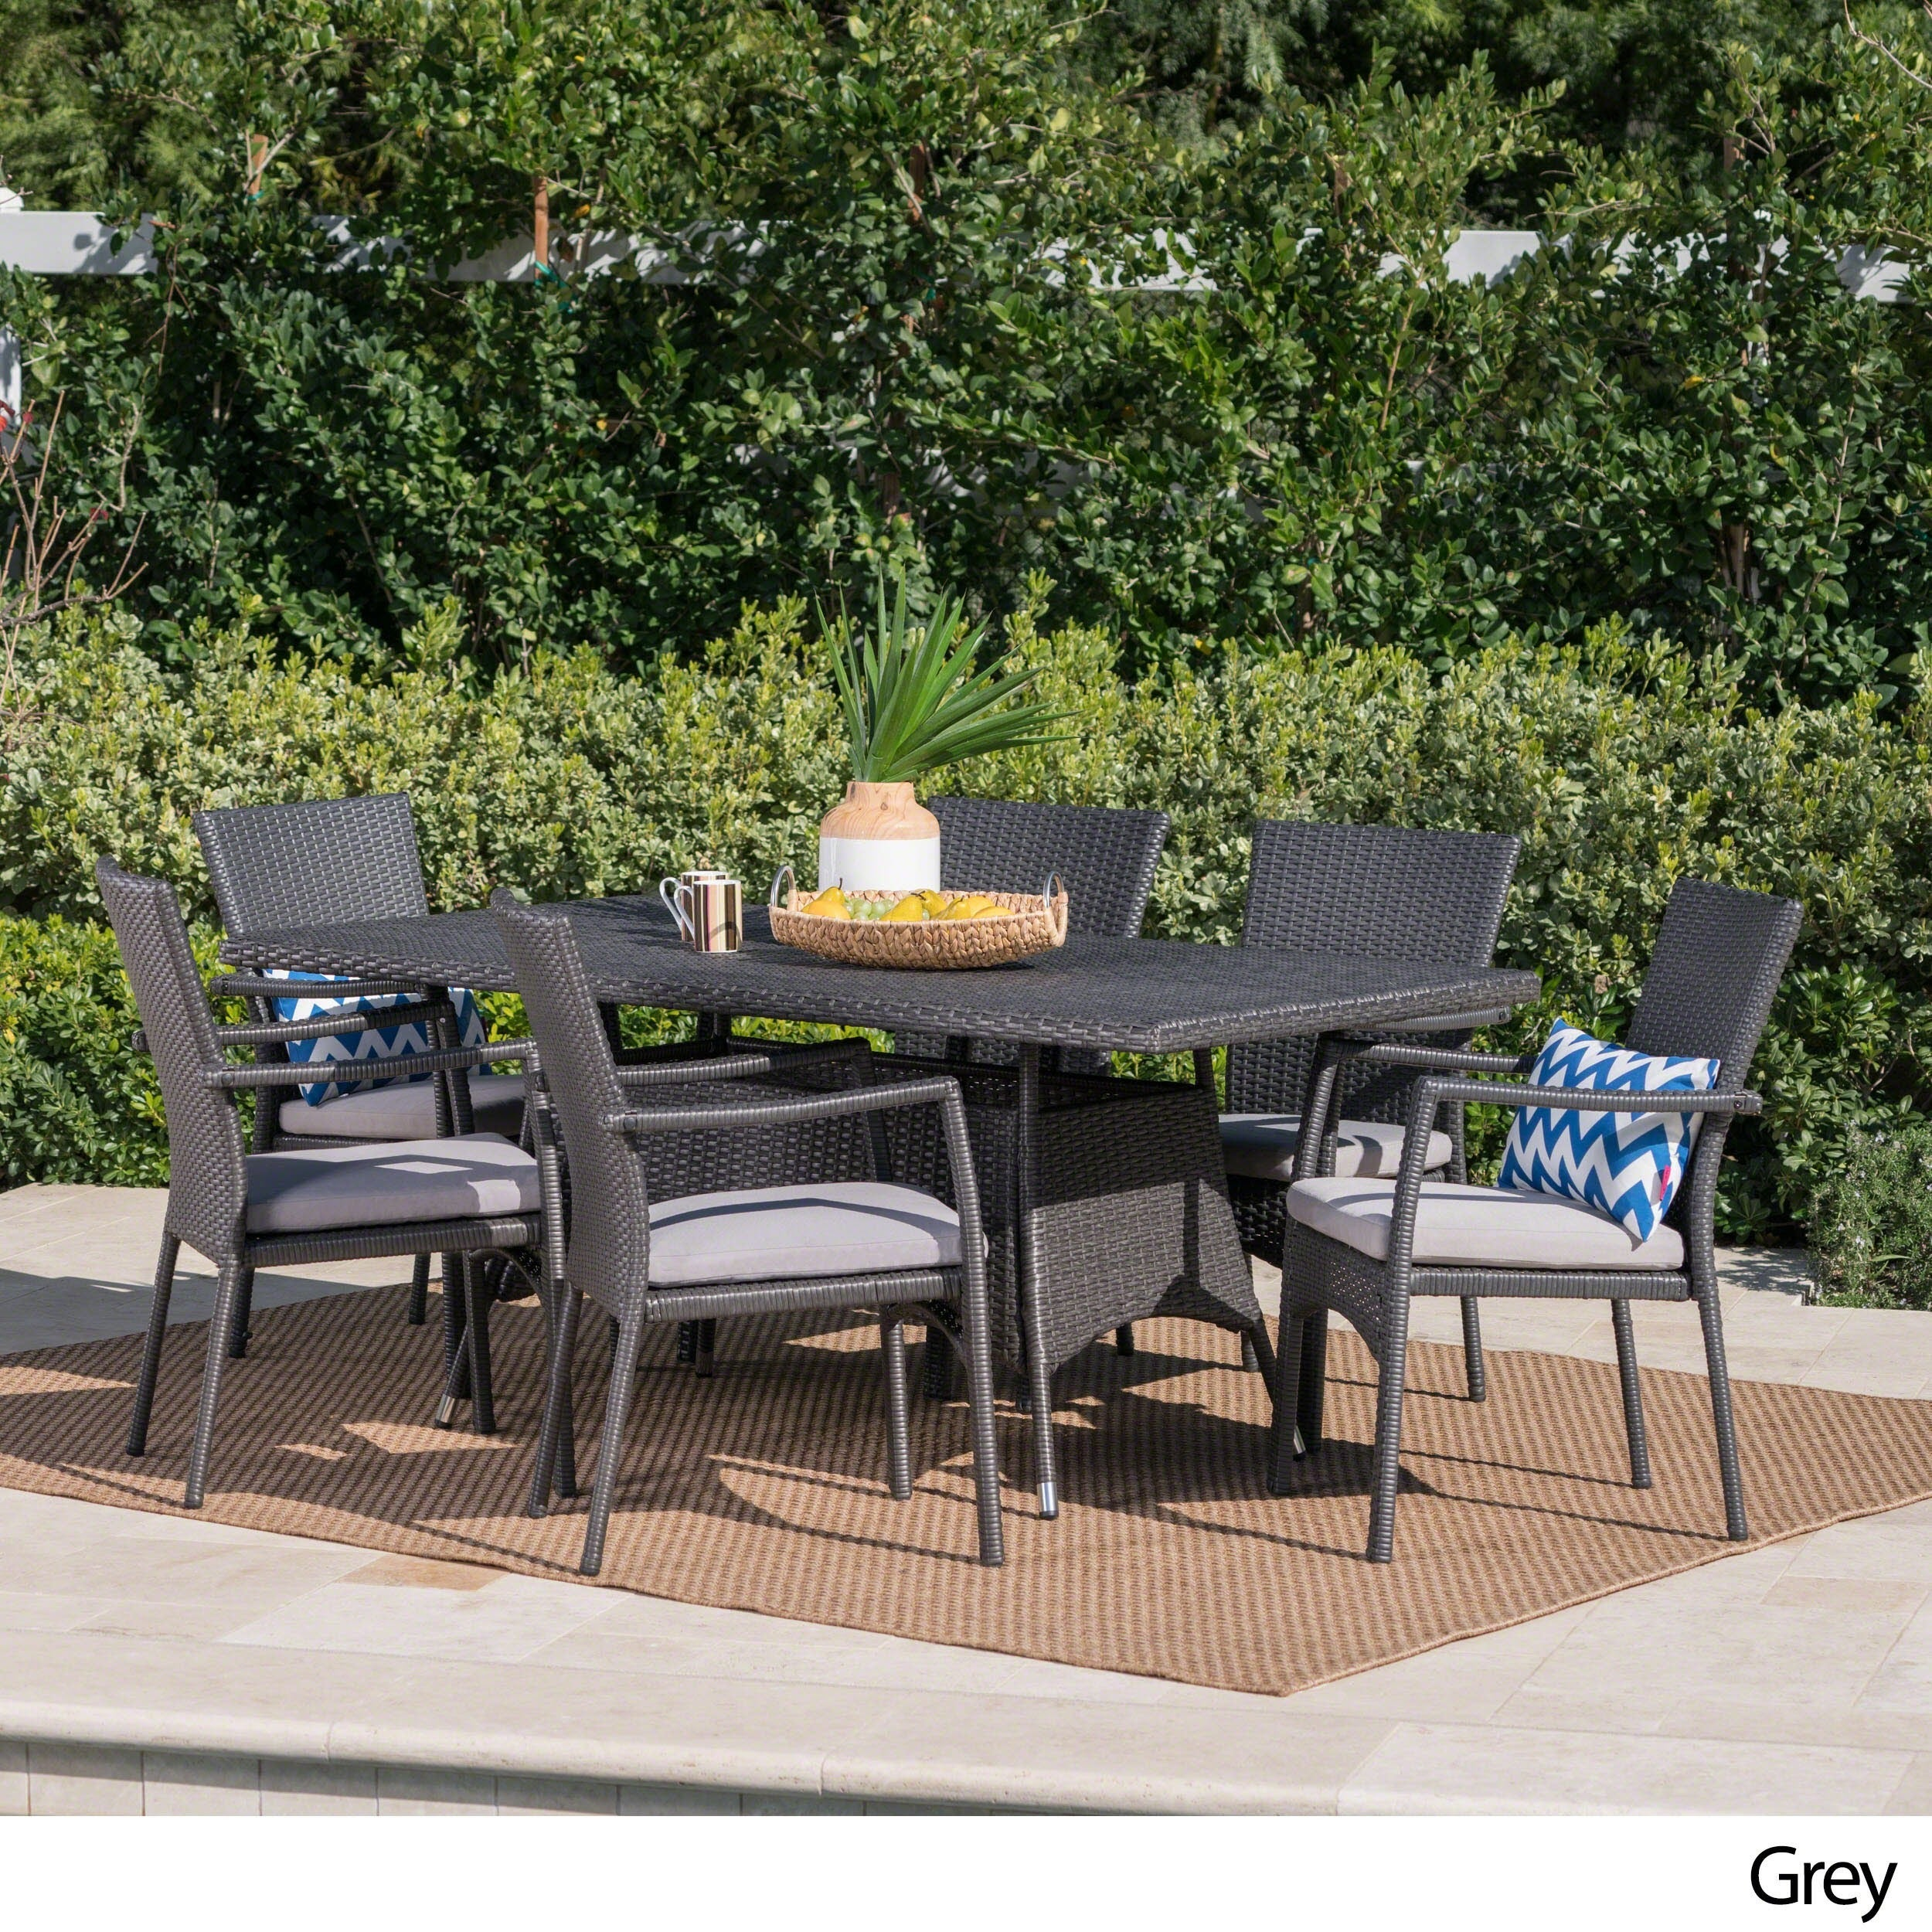 Thompson Outdoor 7 Piece Wicker Dining Set With Cushions By Christopher Knight Home Free Shipping Today 17578089